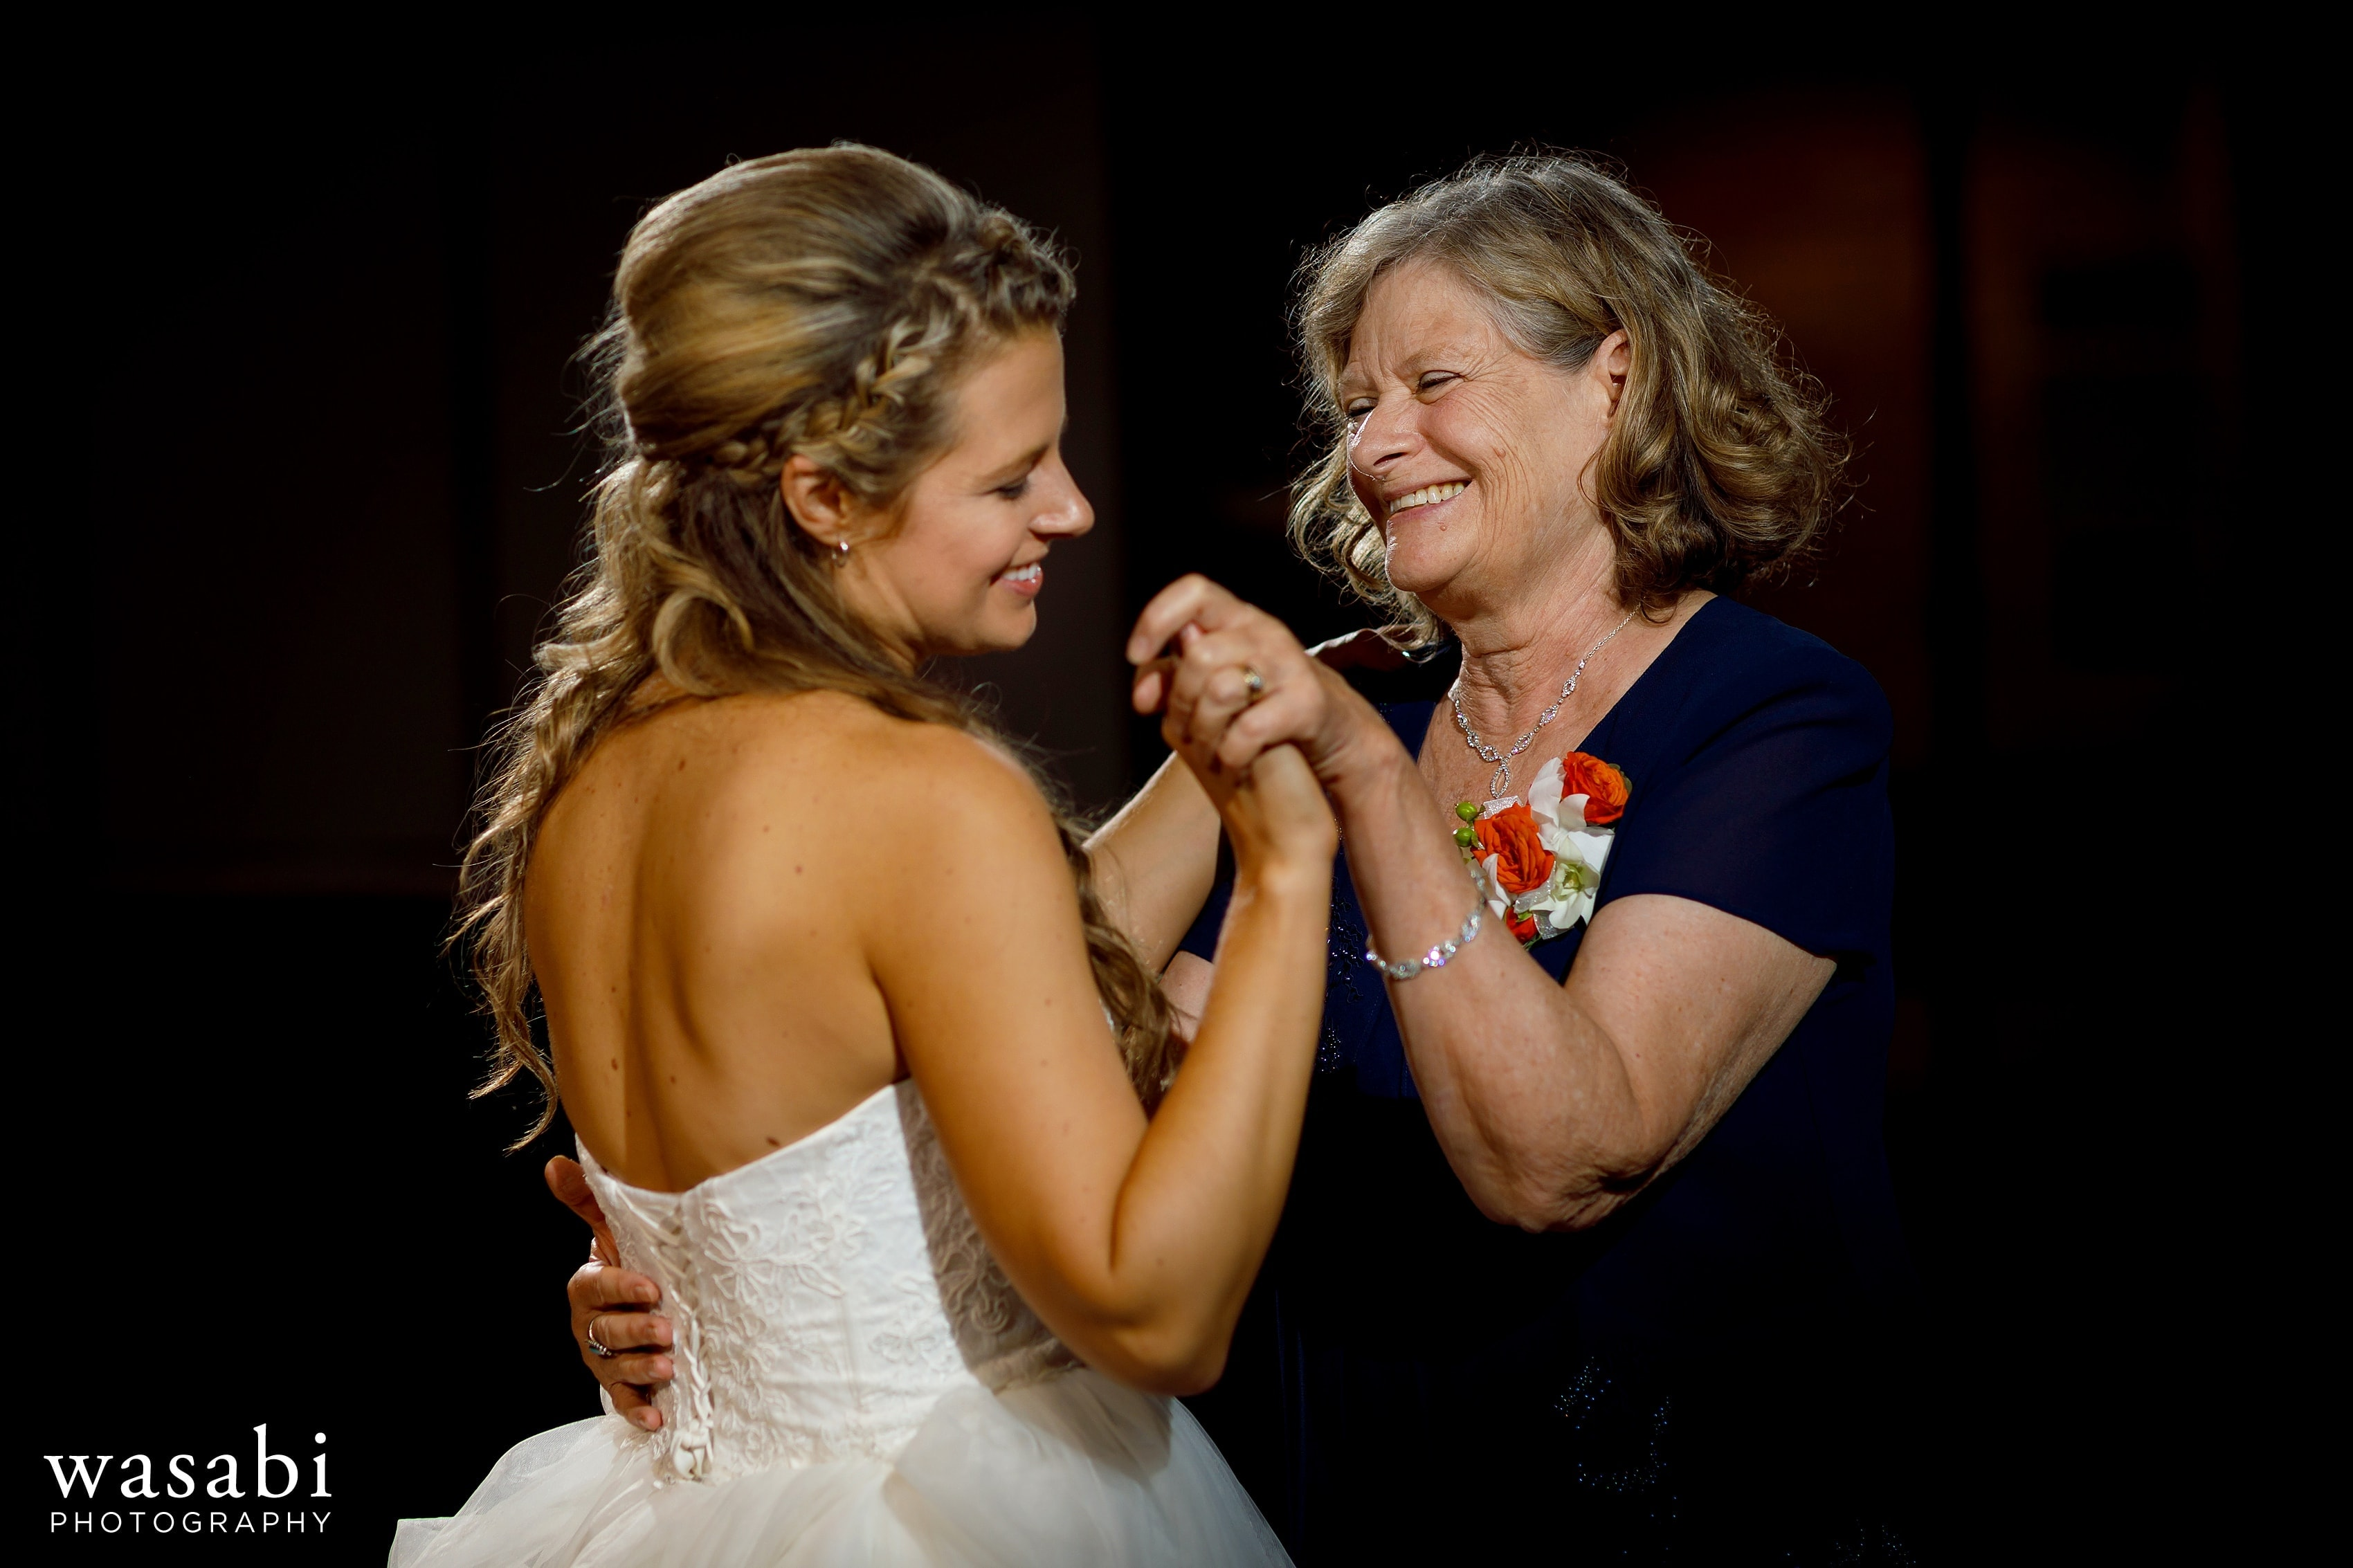 bride shares a first dance with her mother during a wedding reception at Eberhard Center in downtown Grand Rapids